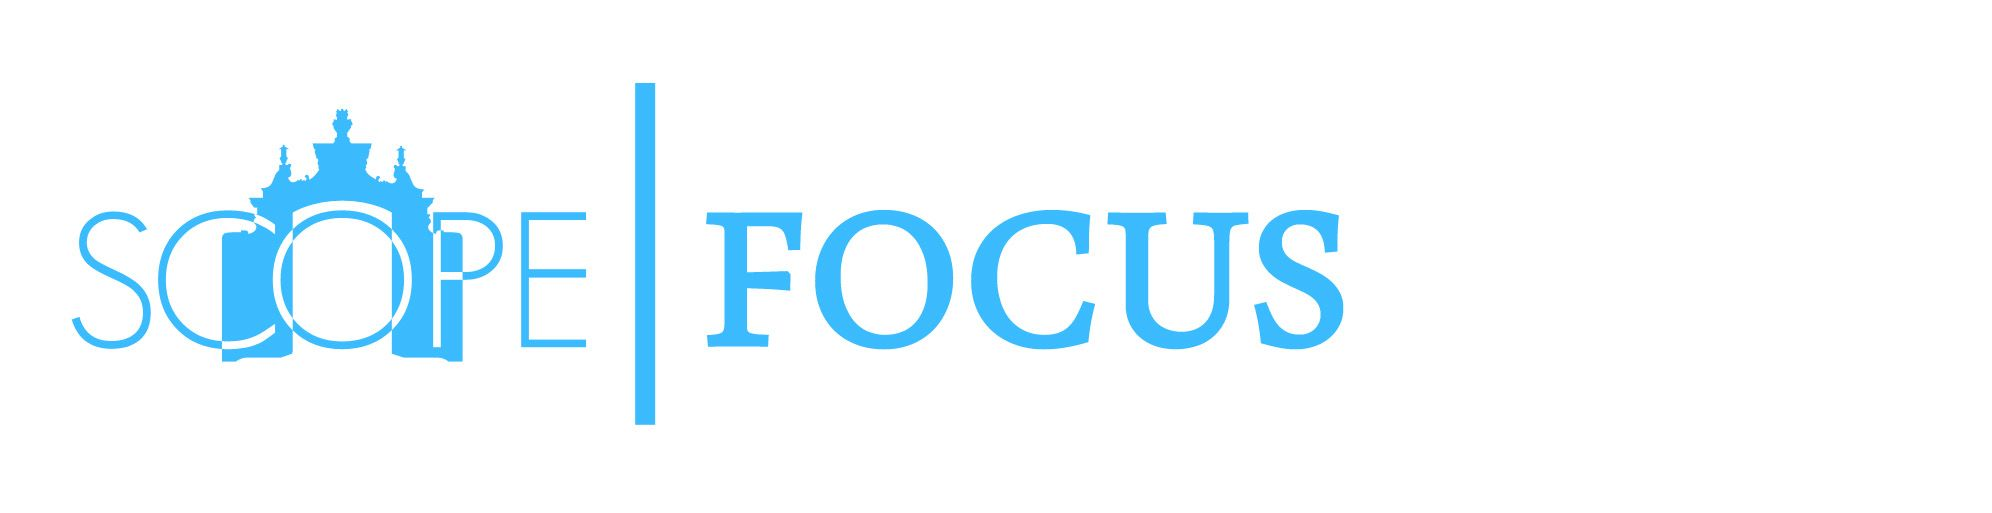 scope focus on